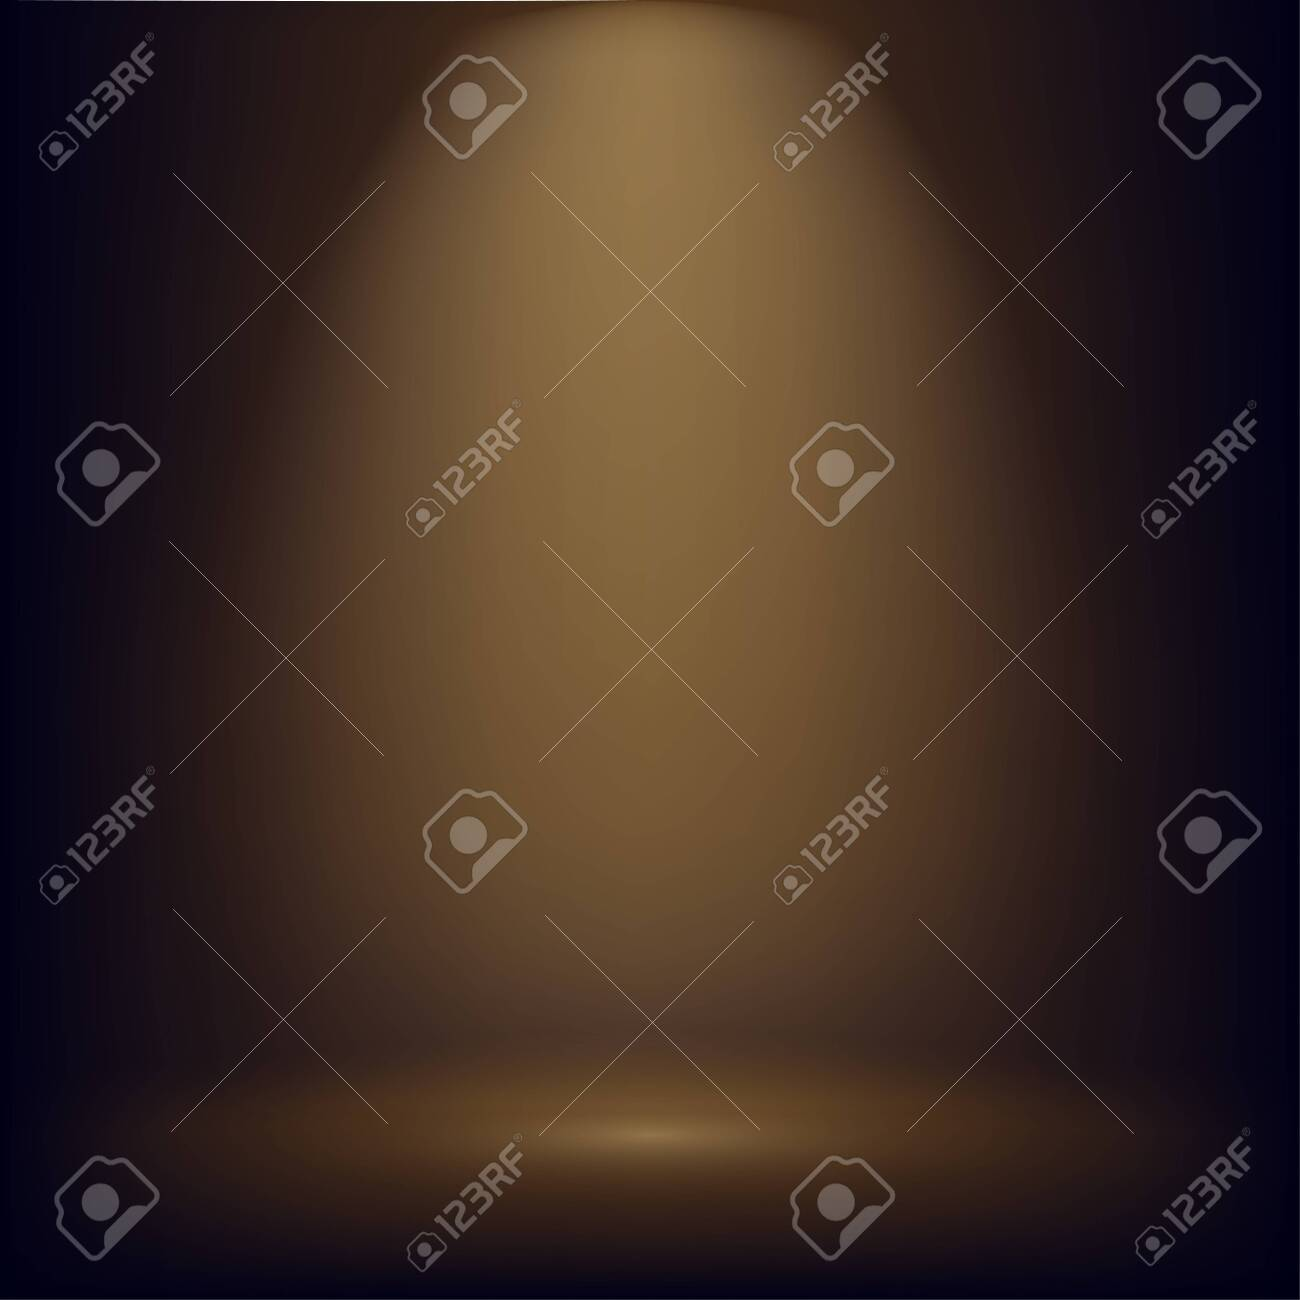 Mesh blurred background, Black background for presentation, display product placement, vector - 154779935